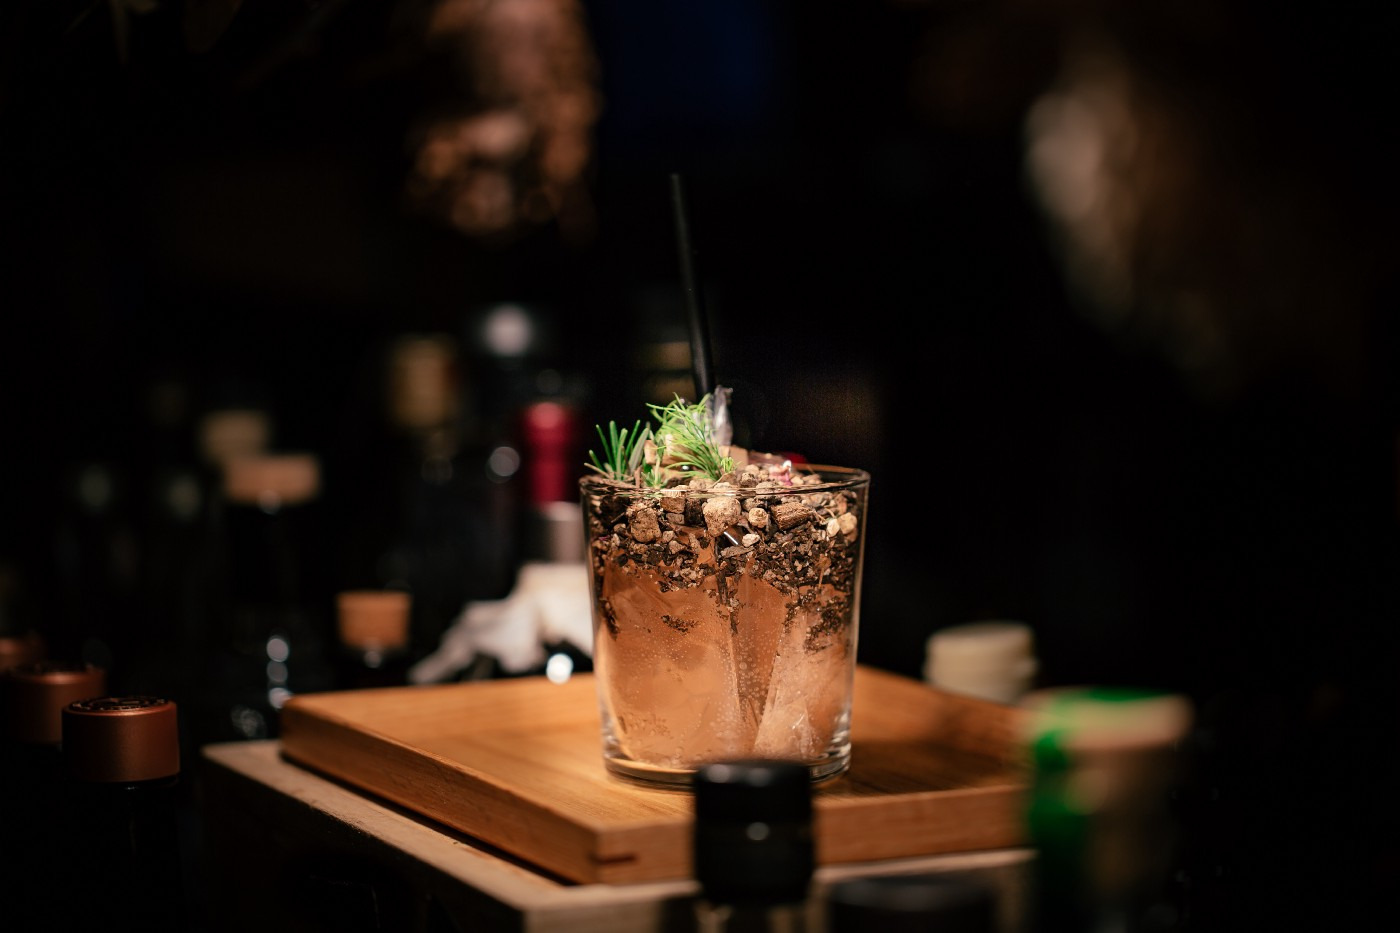 A mixed drink bubbling with a light green garnish in golden liquid and light—almost making it glow—sitting on a golden wooden board, elevated on a bartender's counter but all else is dark around it except the silhouettes and shadows of liquor bottles.